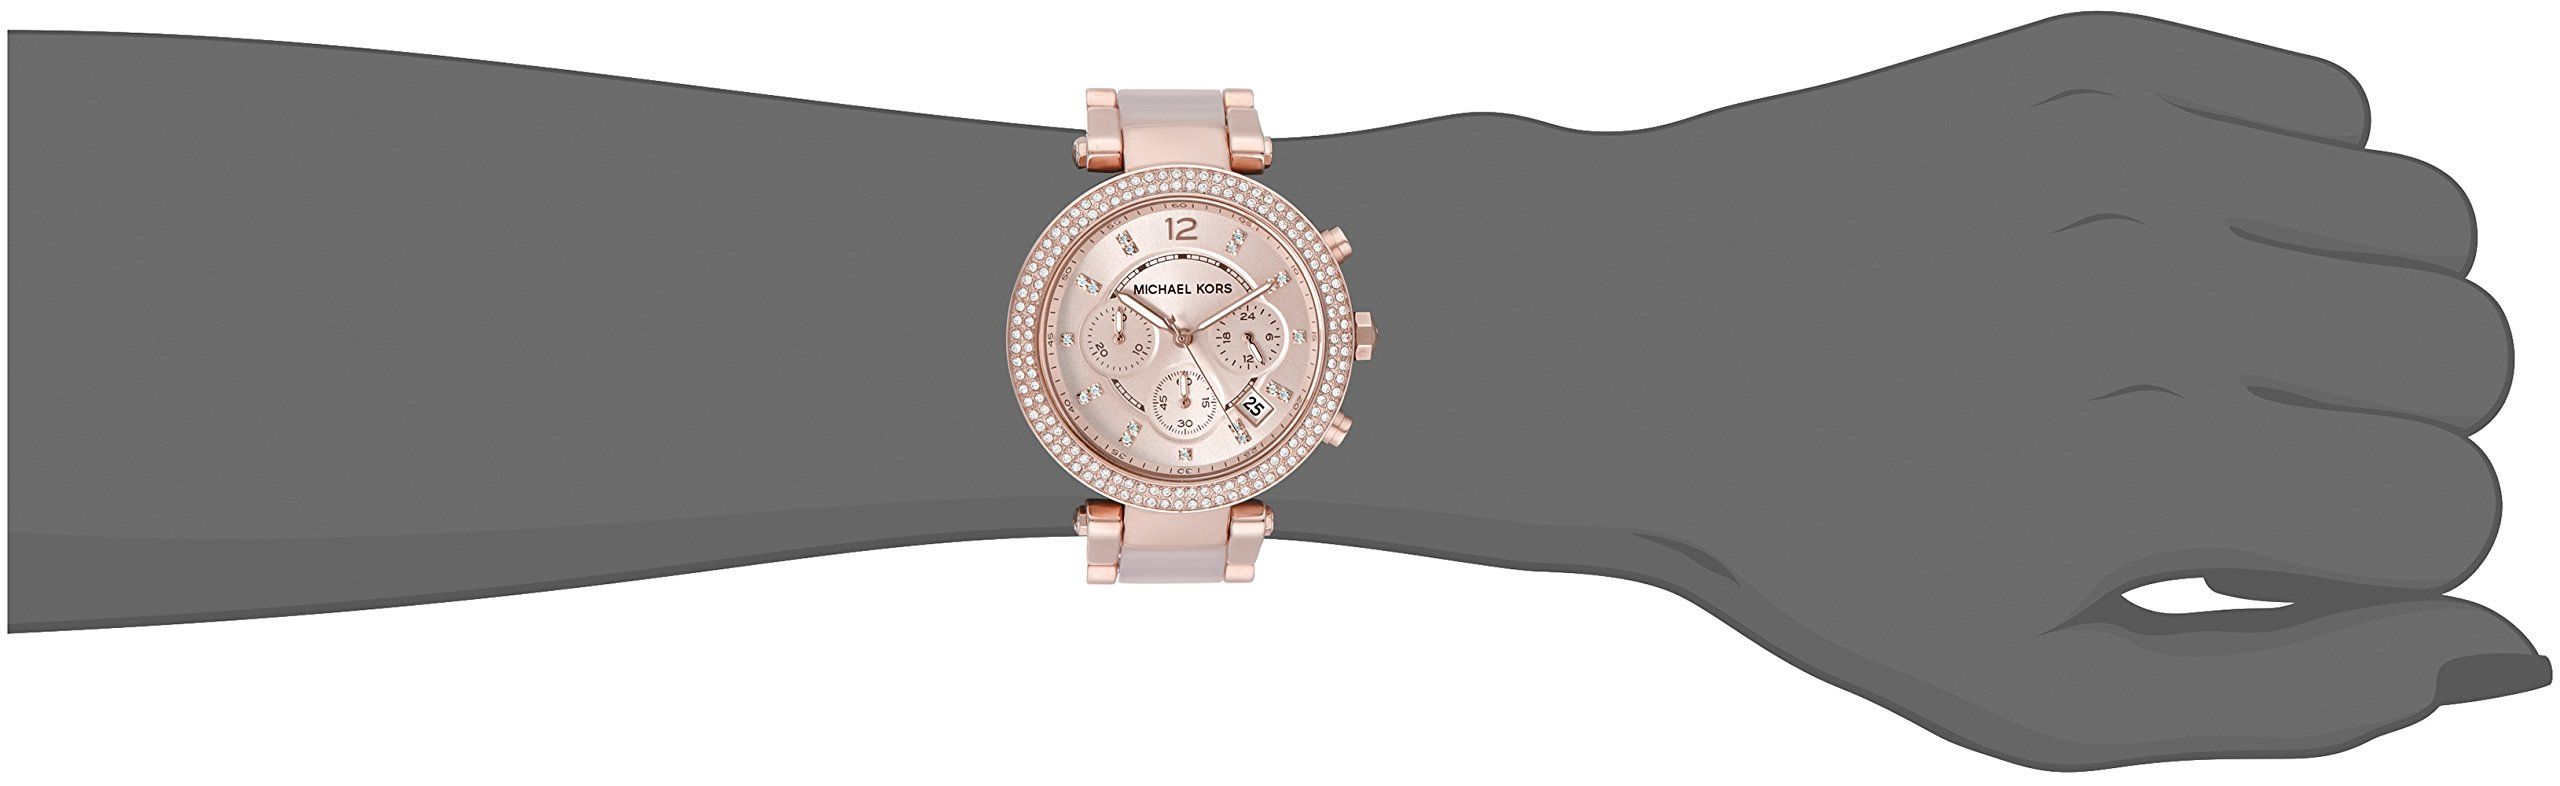 1dfeee17a57a Michael Kors Women s Parker Two-Tone Watch MK5896 - MK5896   Wrist Watches    Clothing